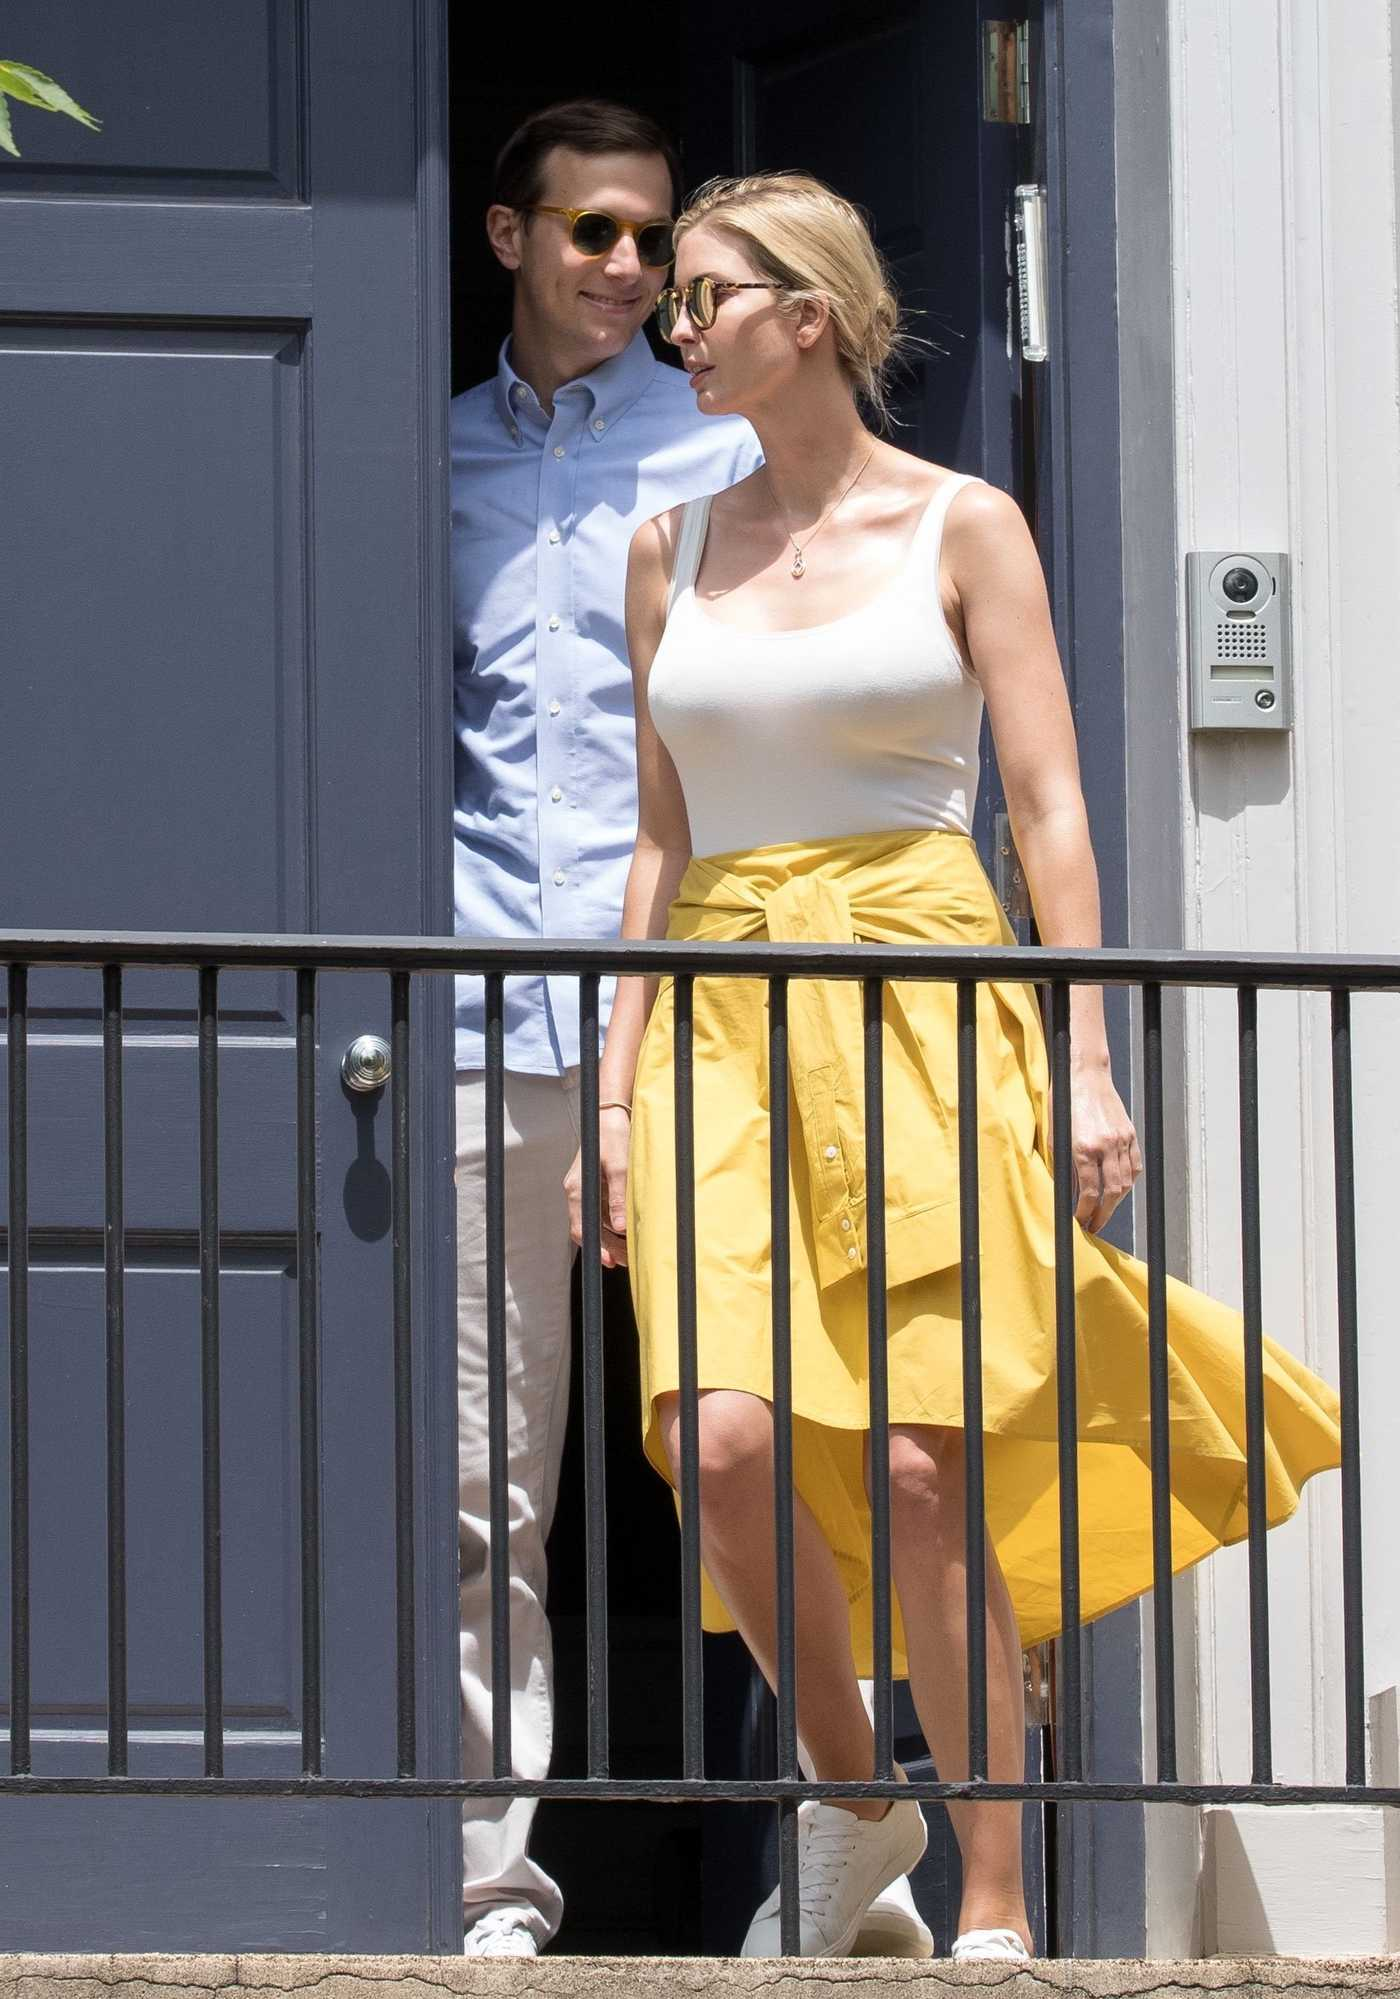 Ivanka Trump and Jared Kushner Leave Their House in Washington 06/24/2017